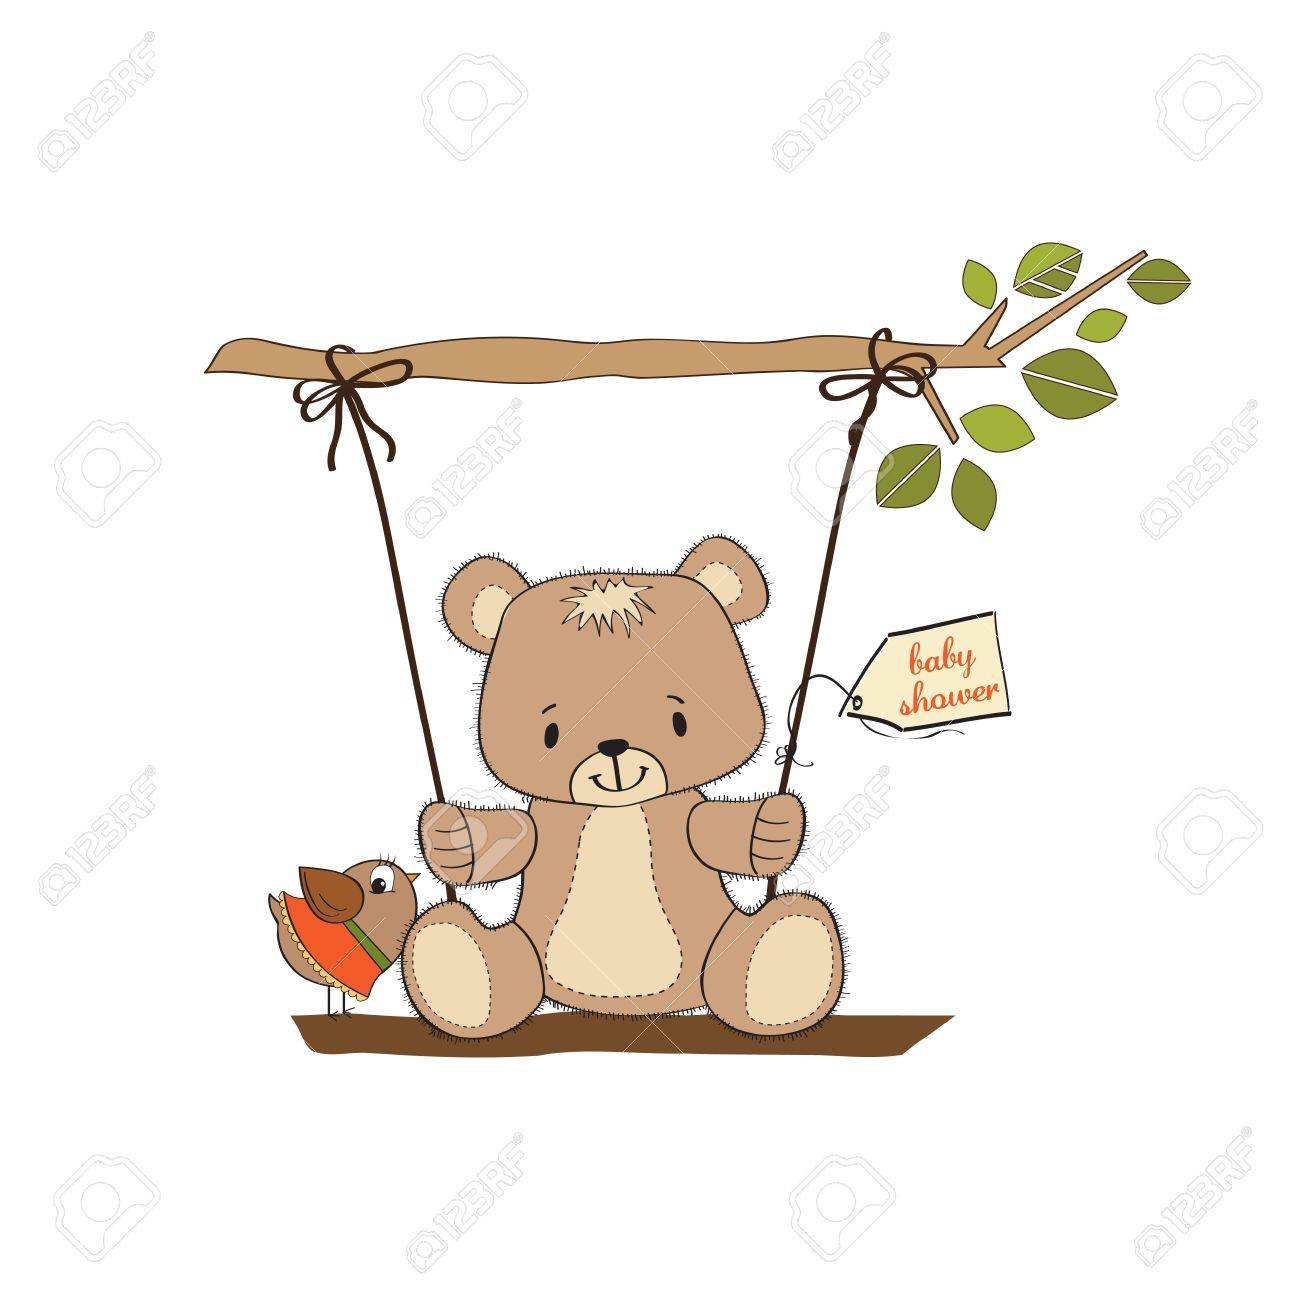 baby shower card with teddy bear in a swing Stock Vector - 15095169